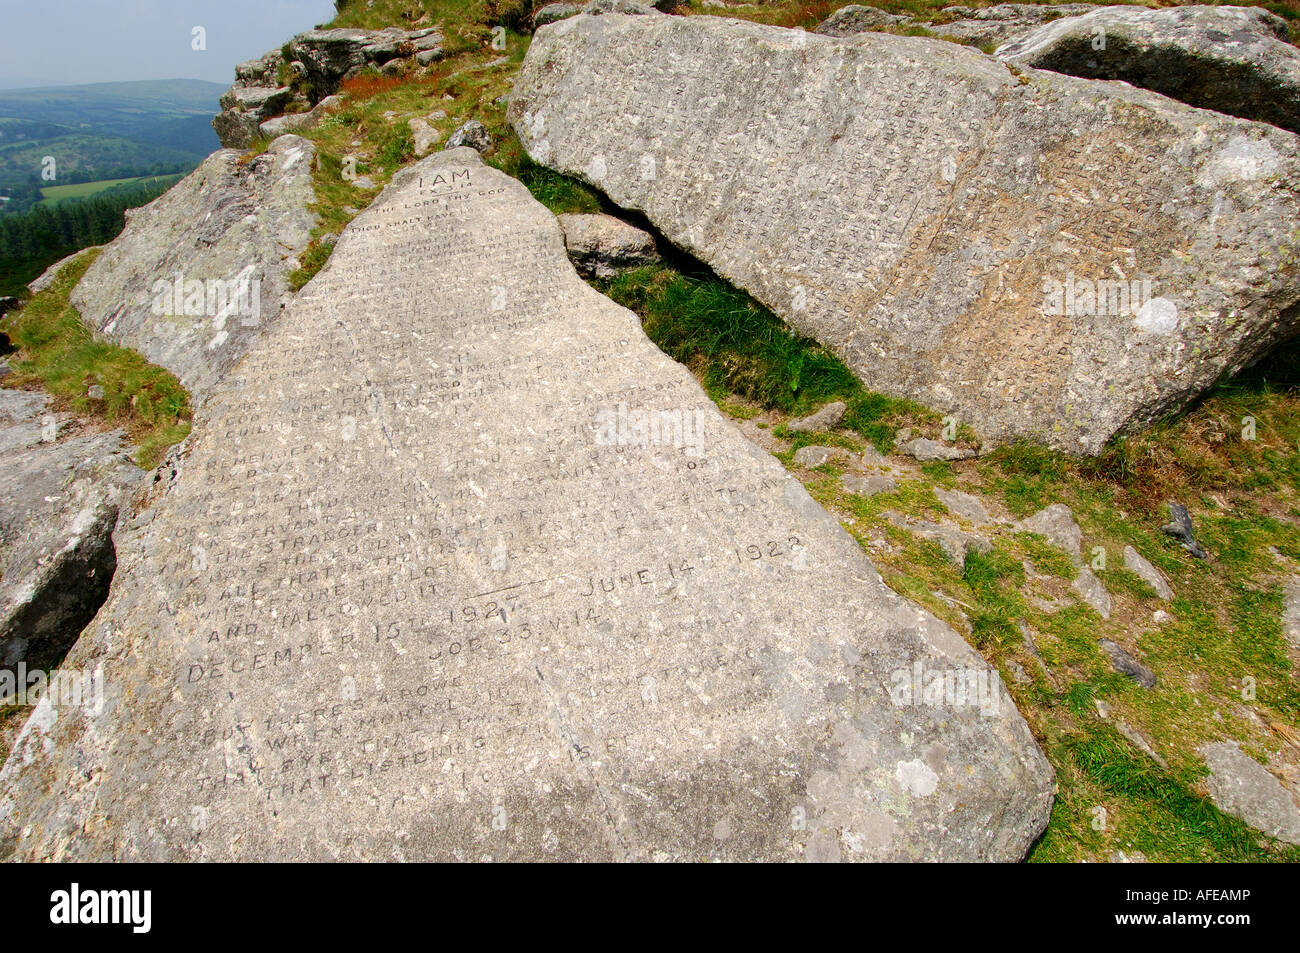 The two Commandment Stones at Buckland Beacon on Dartmoor carved with Christian text - Stock Image